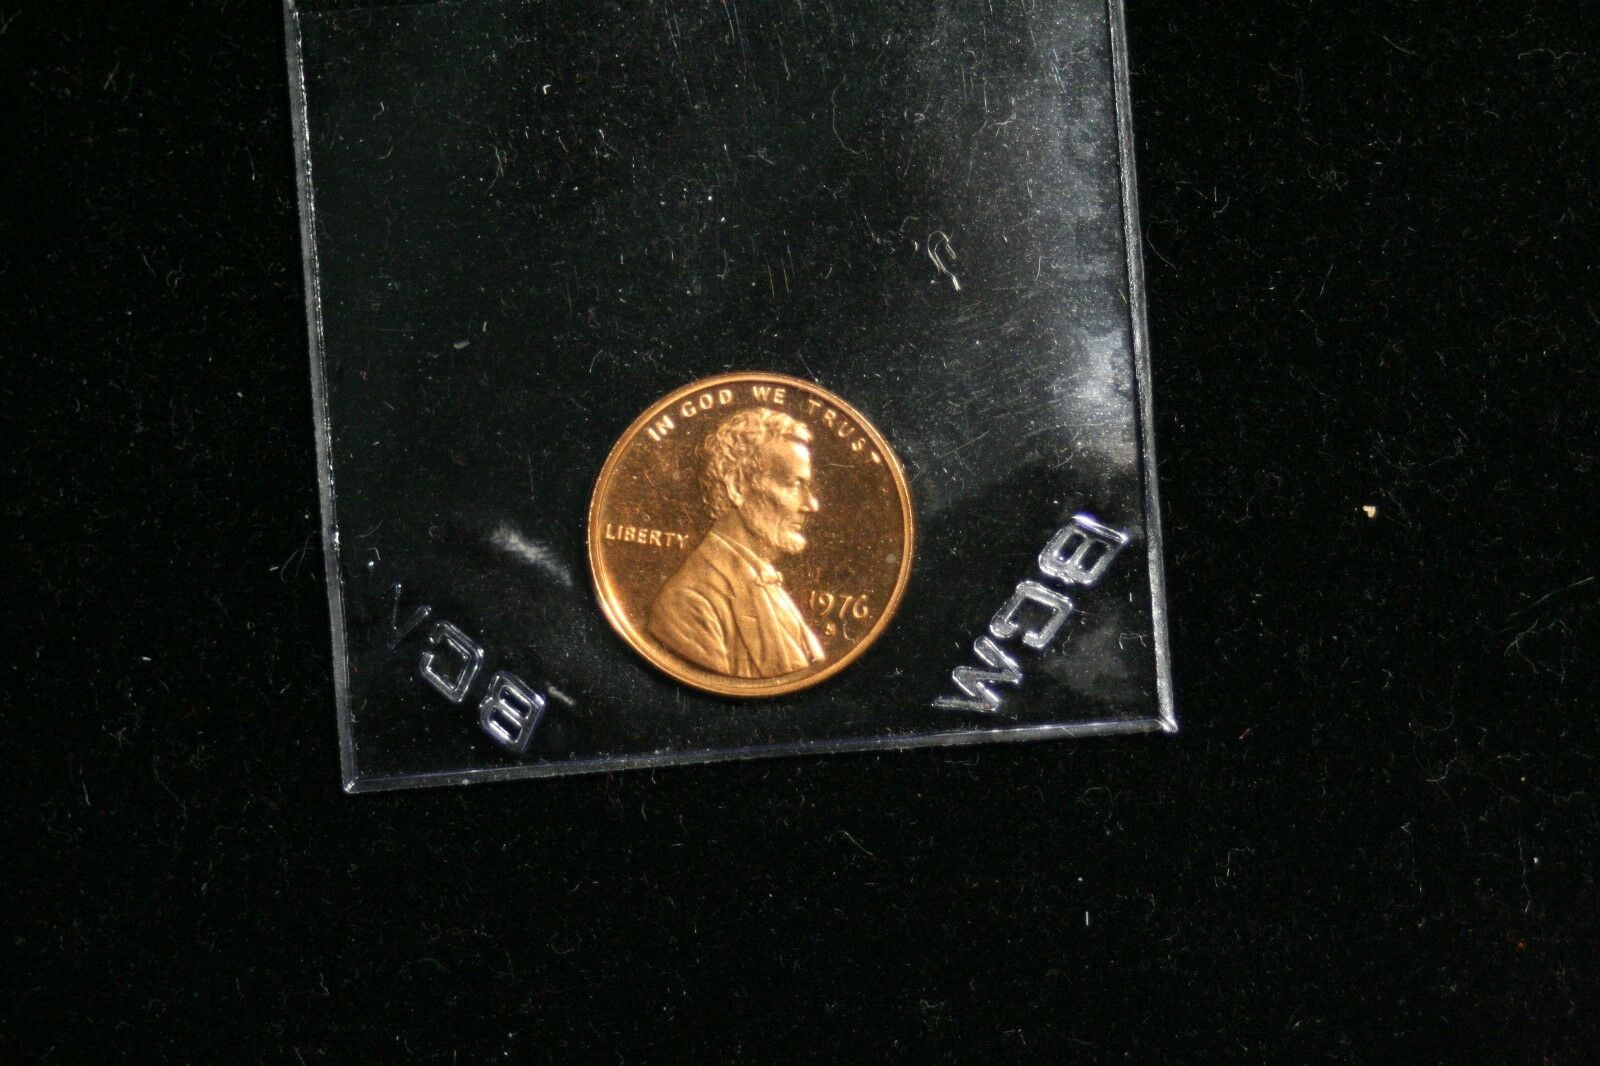 """1976 S PROOF LINCOLN MEMORIAL CENT PENNY """"Free Shipping"""" - Image 1"""